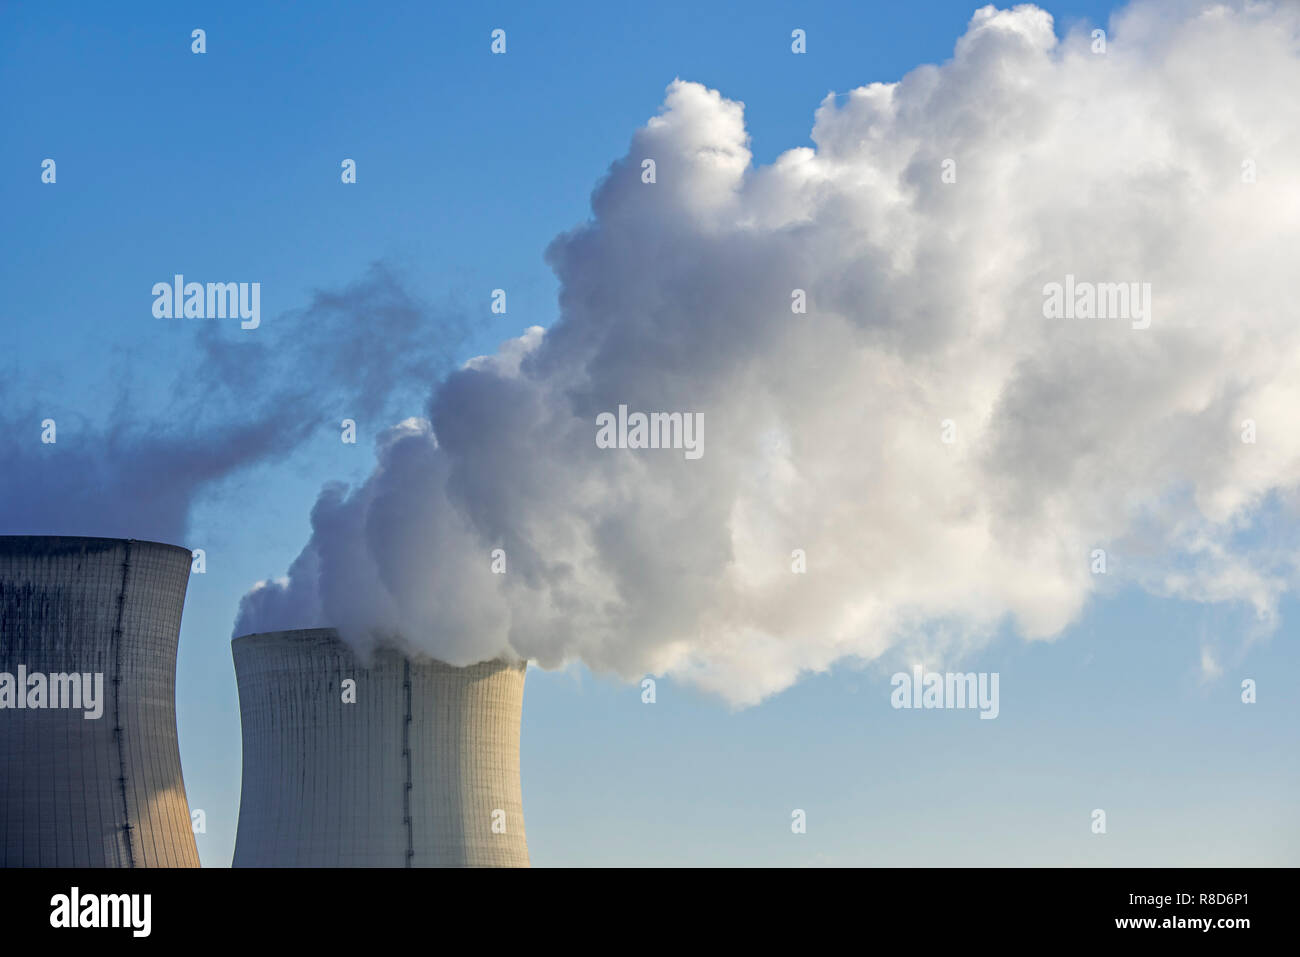 Two cooling towers of nuclear power station / nuclear power plant and massive cloud of water vapour / steam against blue sky - Stock Image